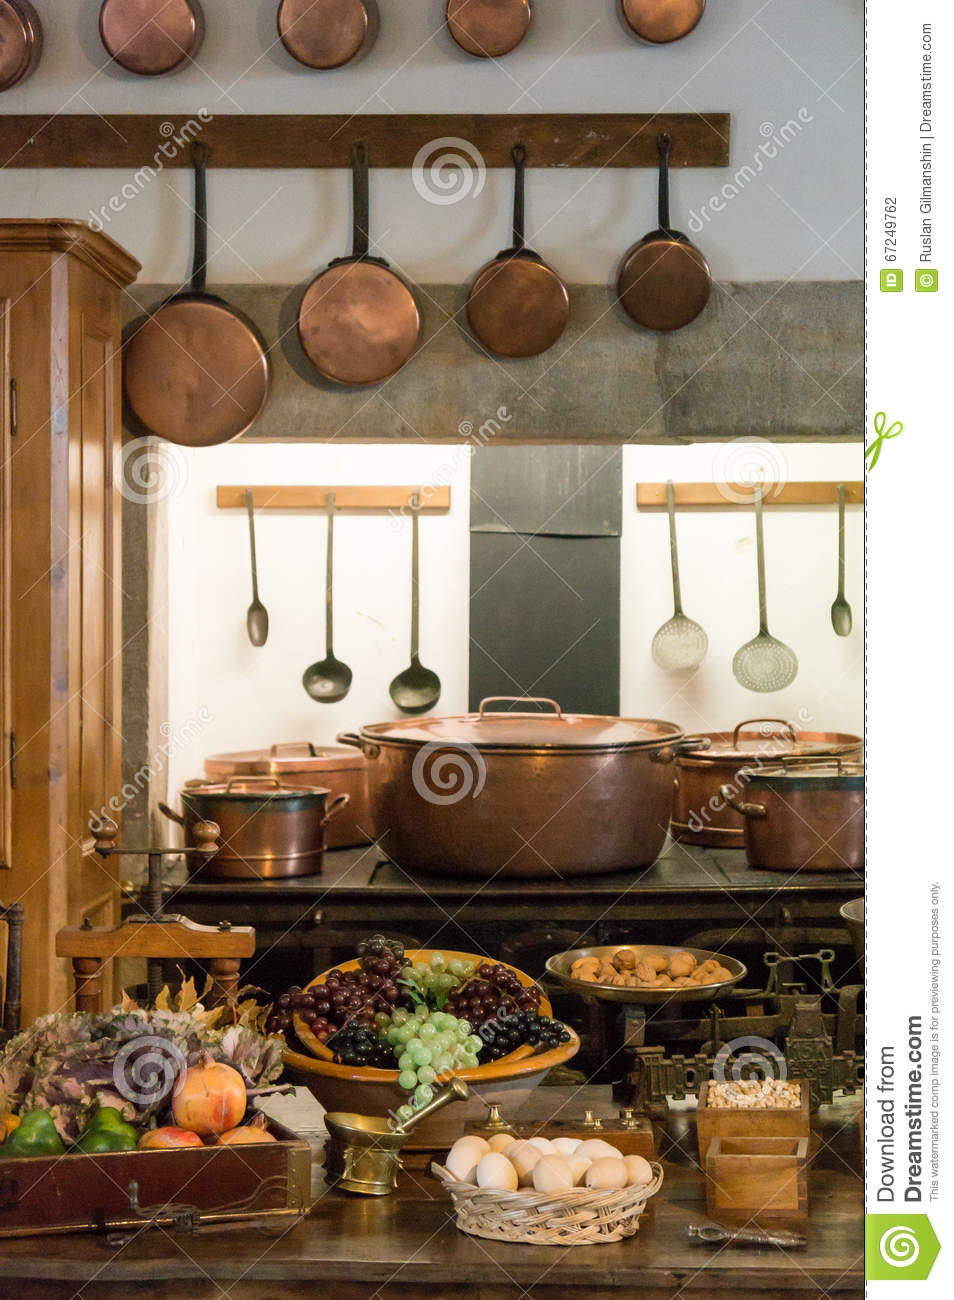 Old country style kitchen with copper pots stock photo for Old country style kitchen